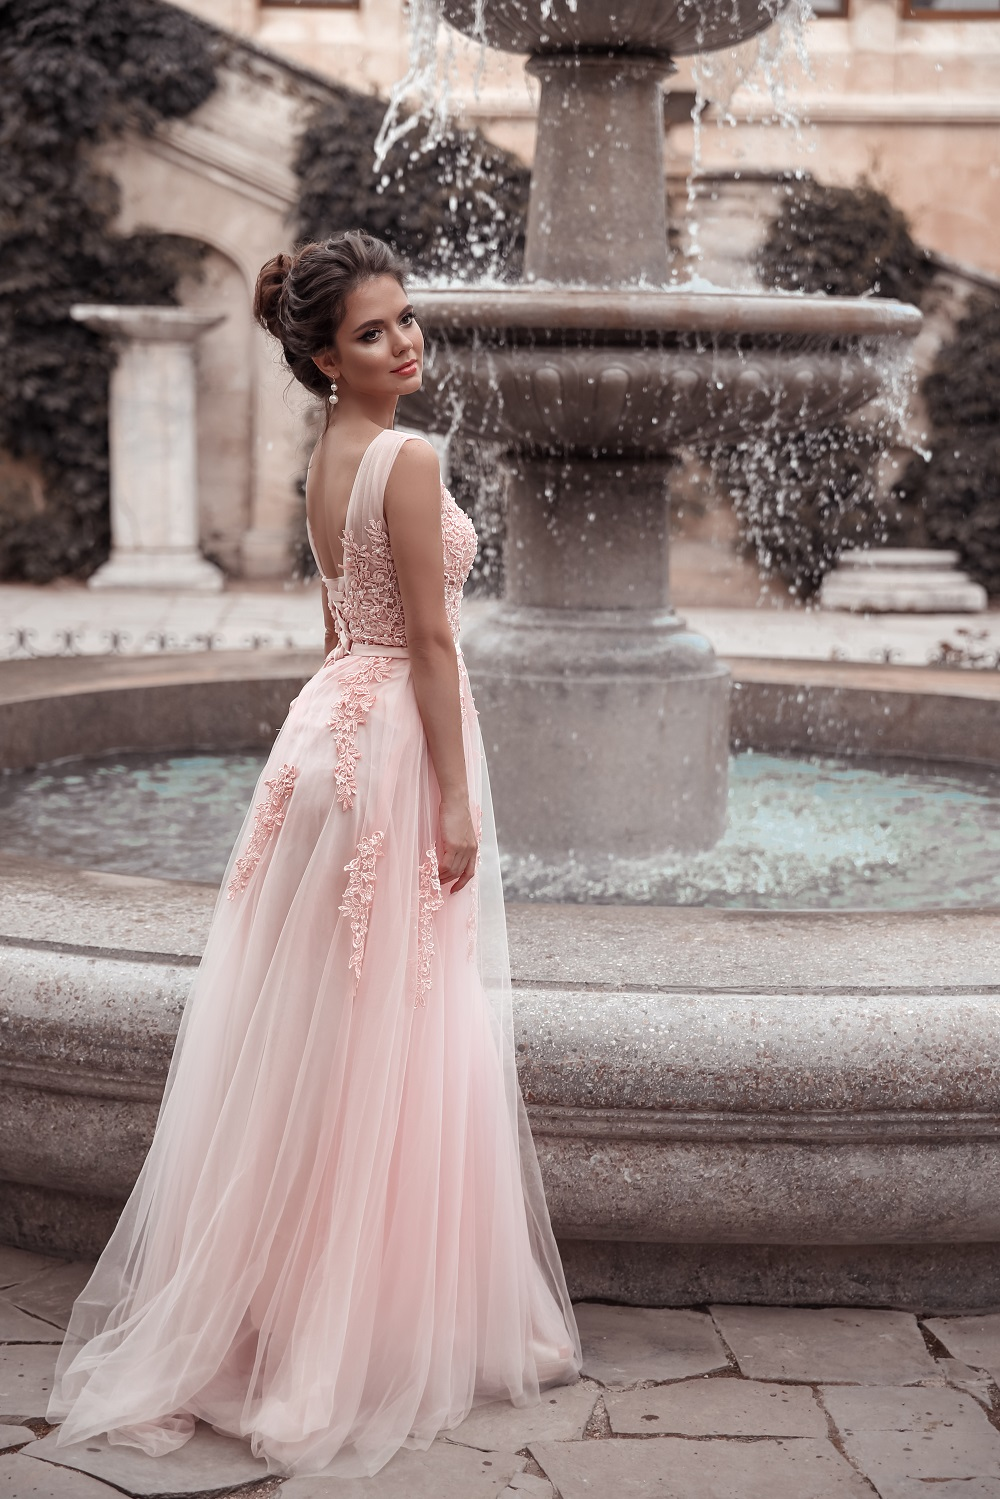 Beautiful bride in pink wedding dress. Outdoor romantic portrait of attractive brunette woman with hairstyle in prom dress with tulle skirt posing by fountain at park.